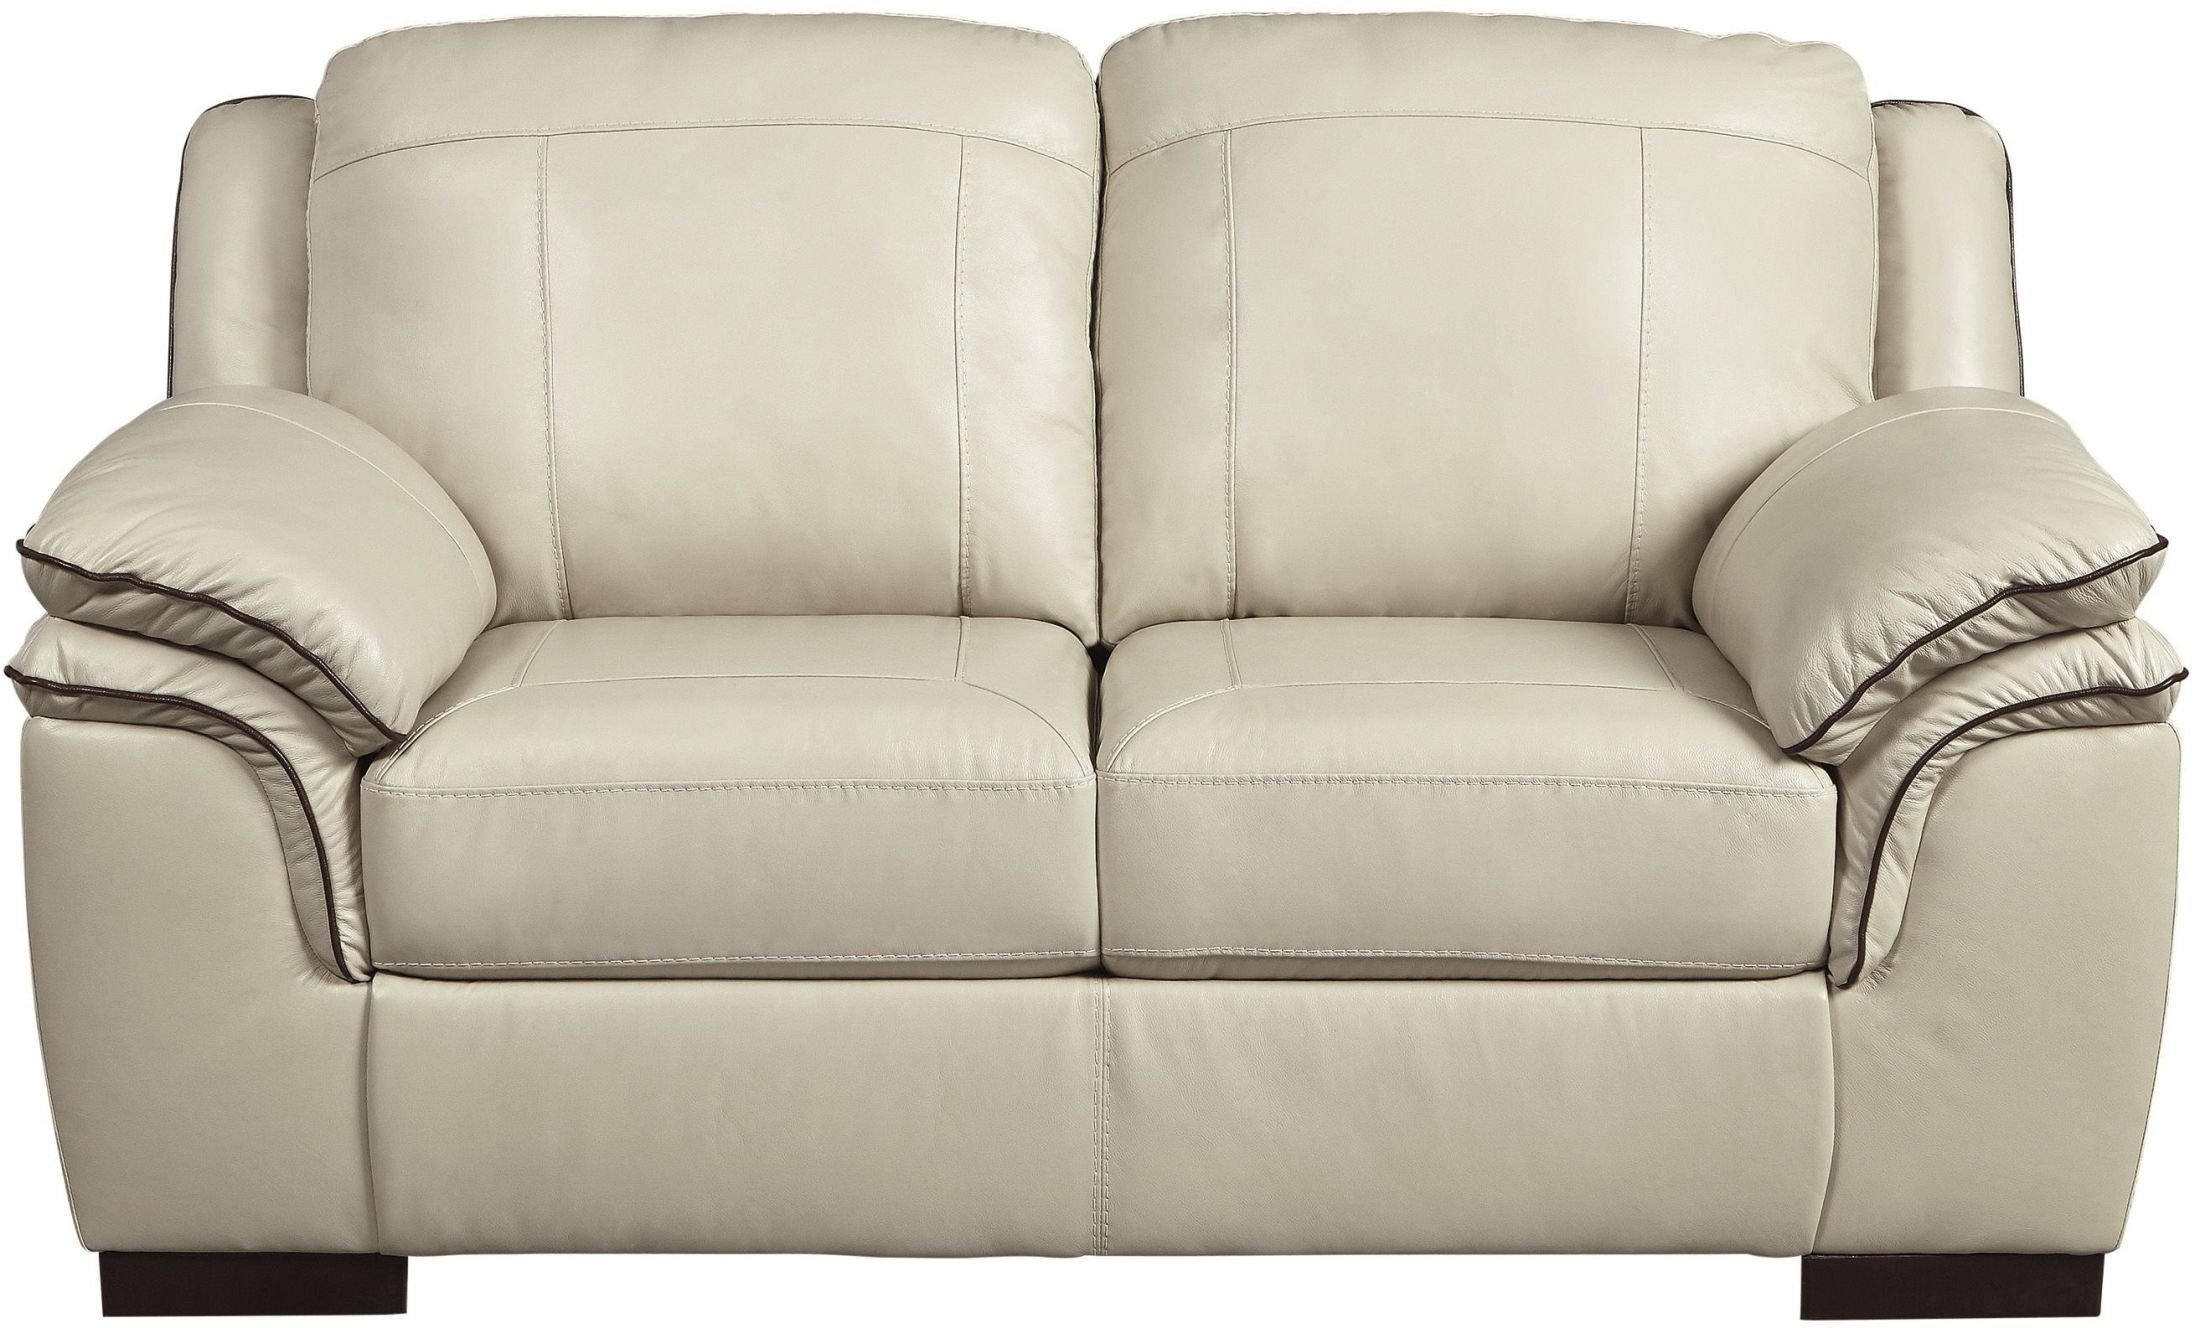 Ashley Islebrook Collection 1520435 70'' Loveseat with Jumbo Stitching Double Pillow Top Arms Hardwood Construction and Leather Upholstery in Vanilla